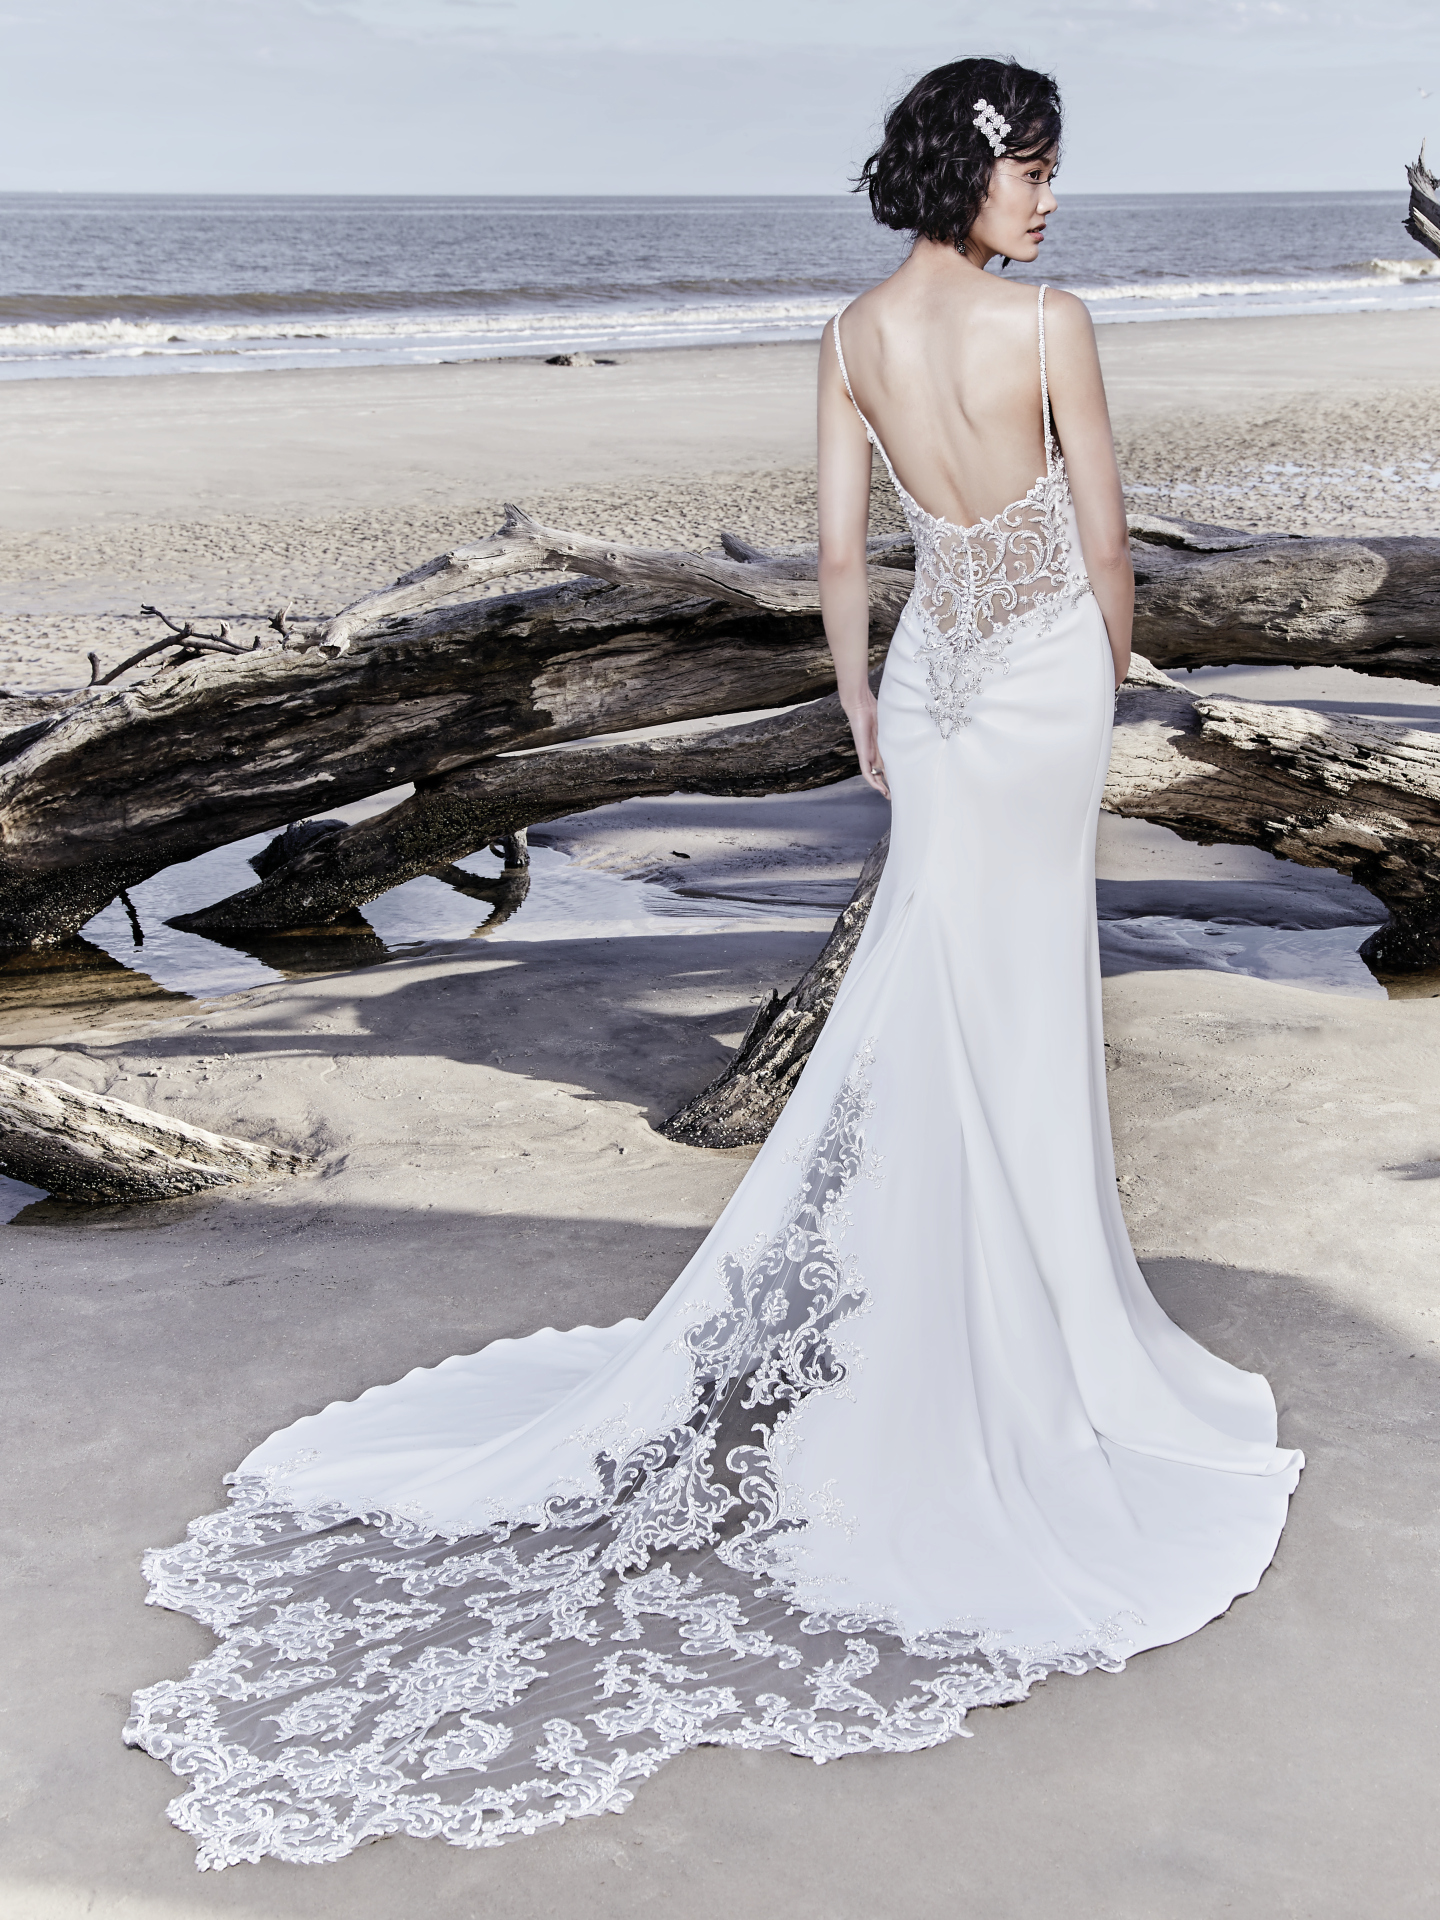 15 Gorgeous Statement-Back Gowns for the Stylish Bride - Hayward wedding dress with statement back by Sottero & Midgley